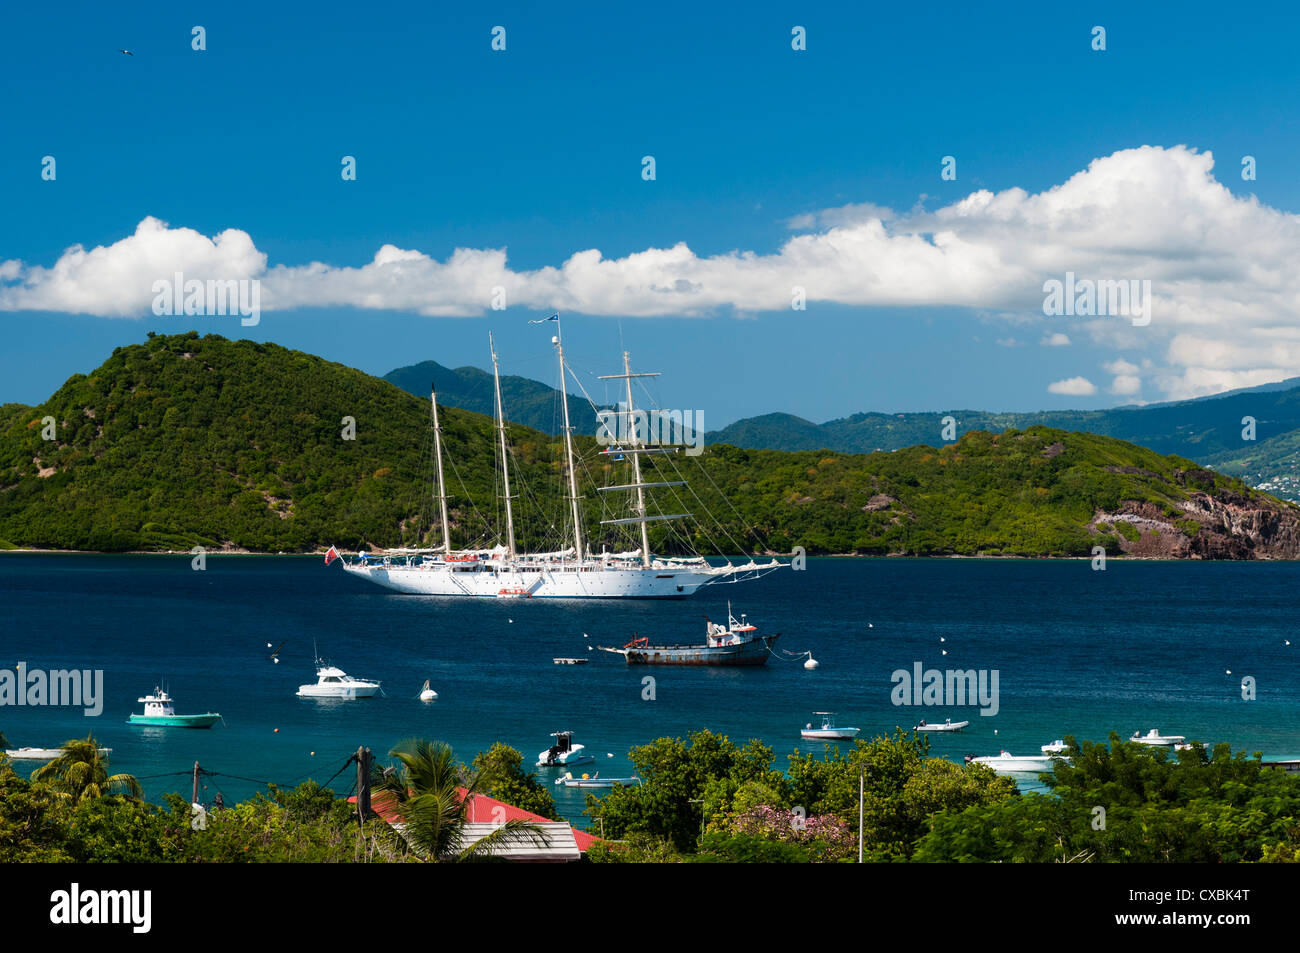 Explore The Beauty Of Caribbean: Guadeloupe Stock Photos & Guadeloupe Stock Images